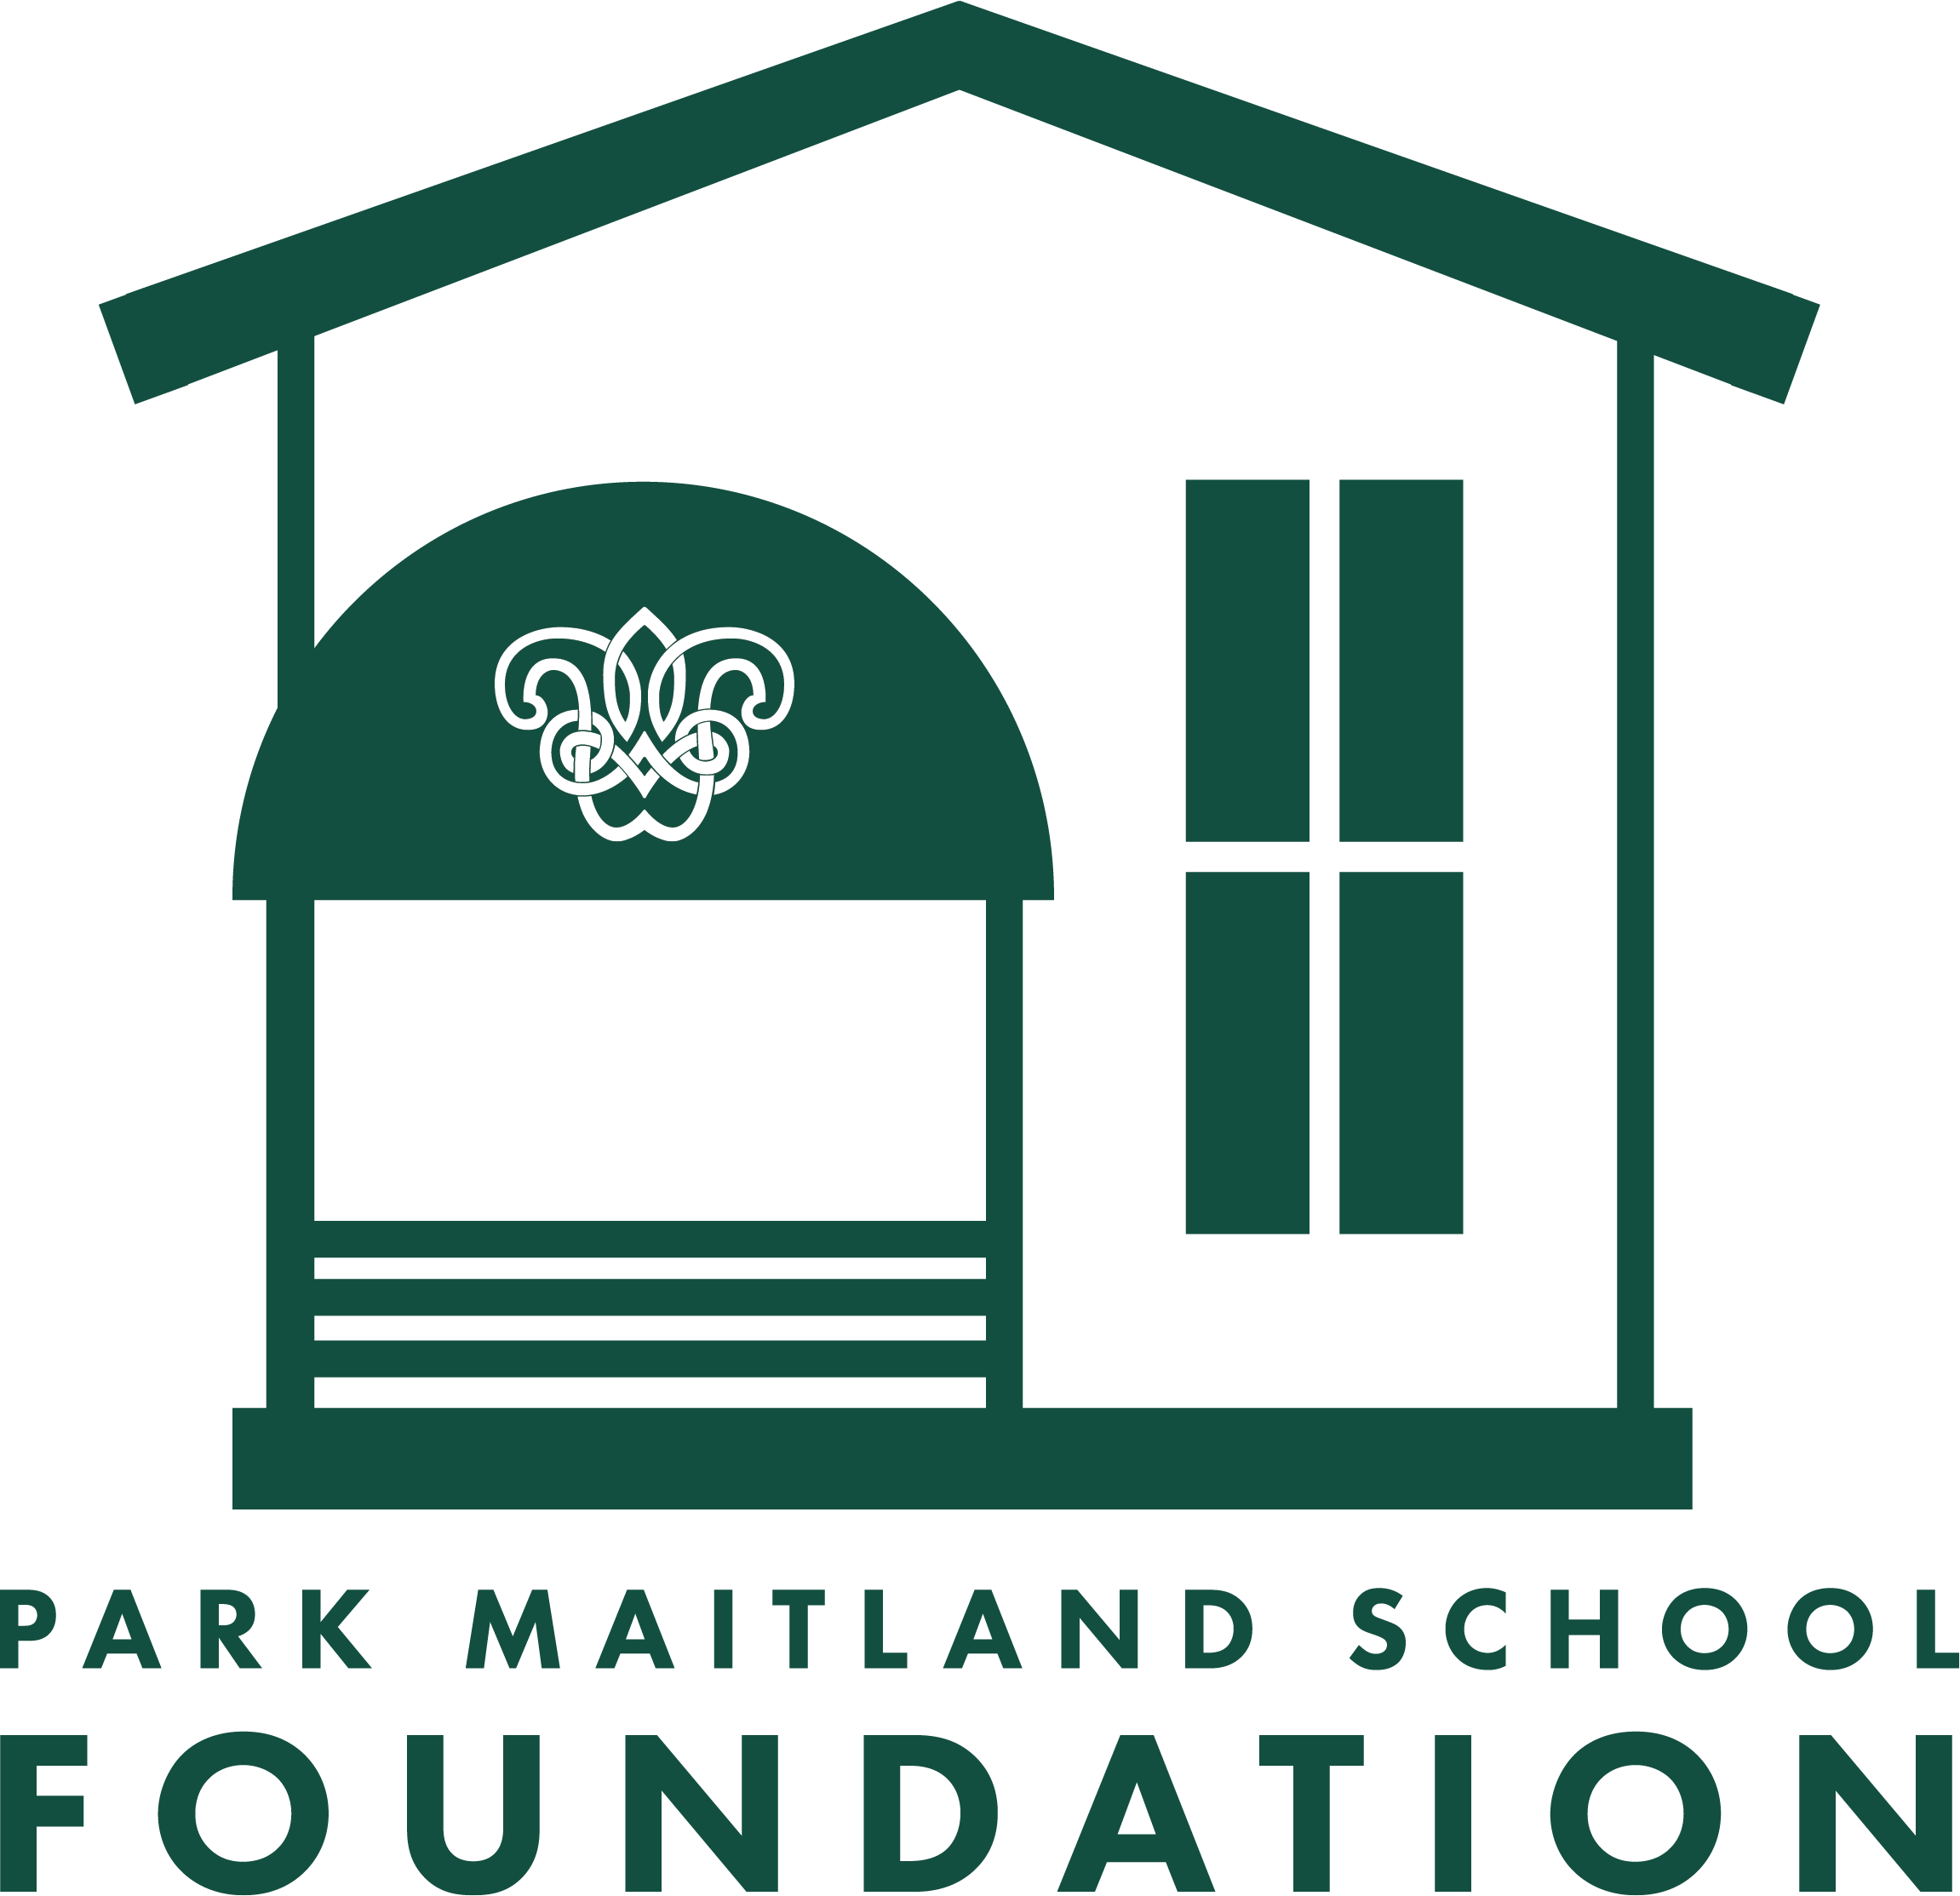 Park Maitland School Foundation